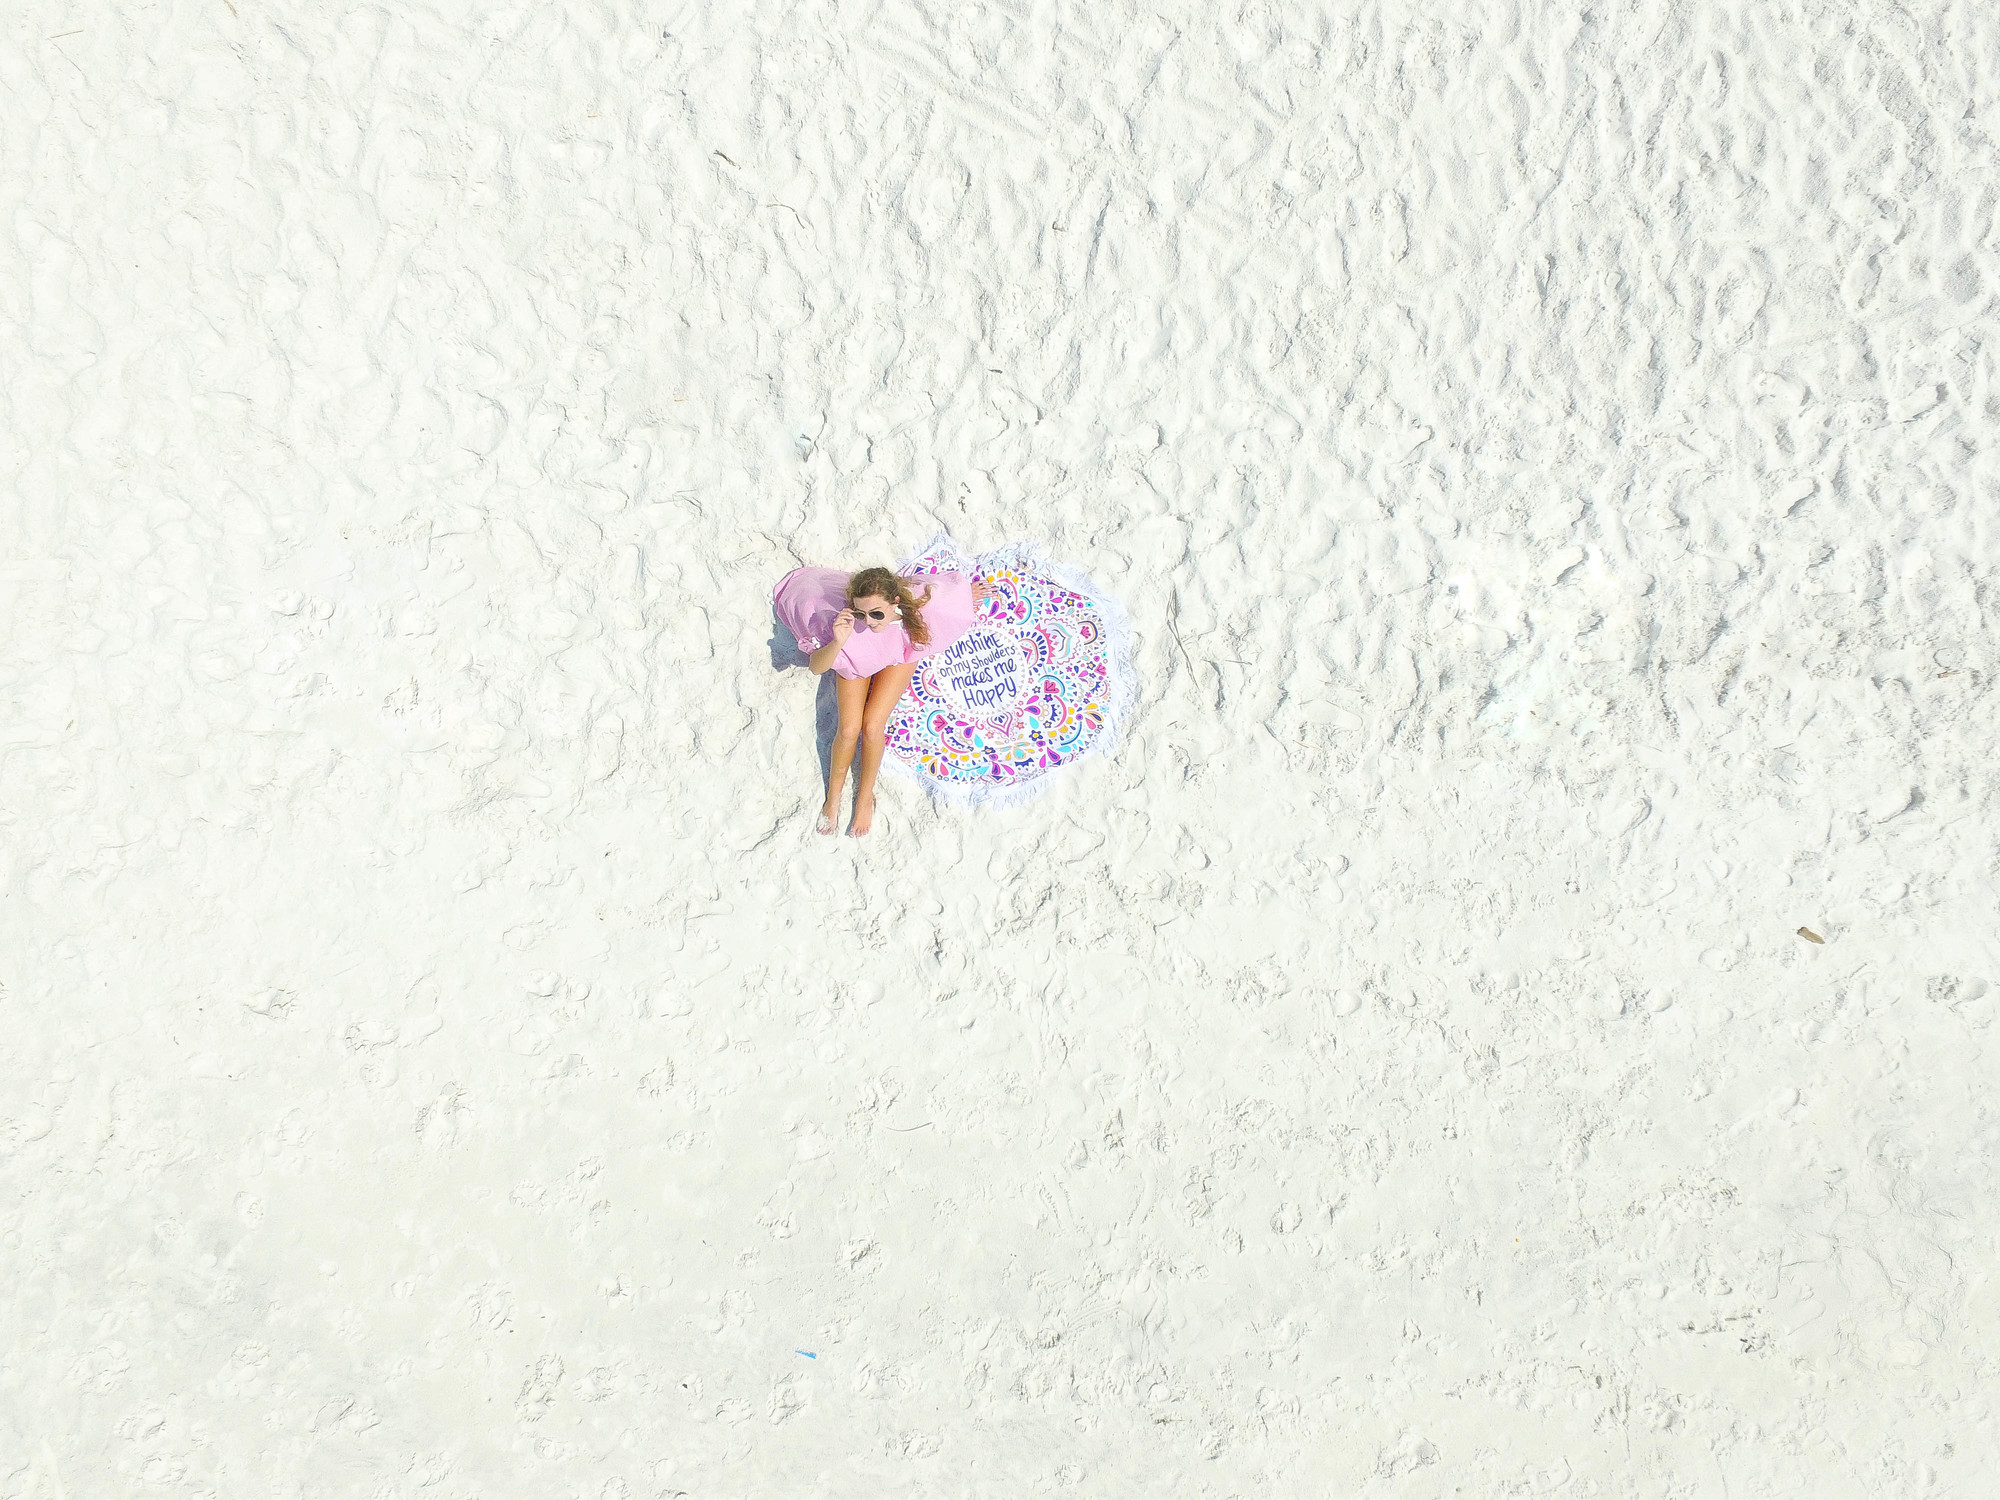 Sunshine on My Shoulders Makes Me Happy beach pom pom cover up OOTD dji phantom 3 drone picture by lauren lindmark on daily dose of charm